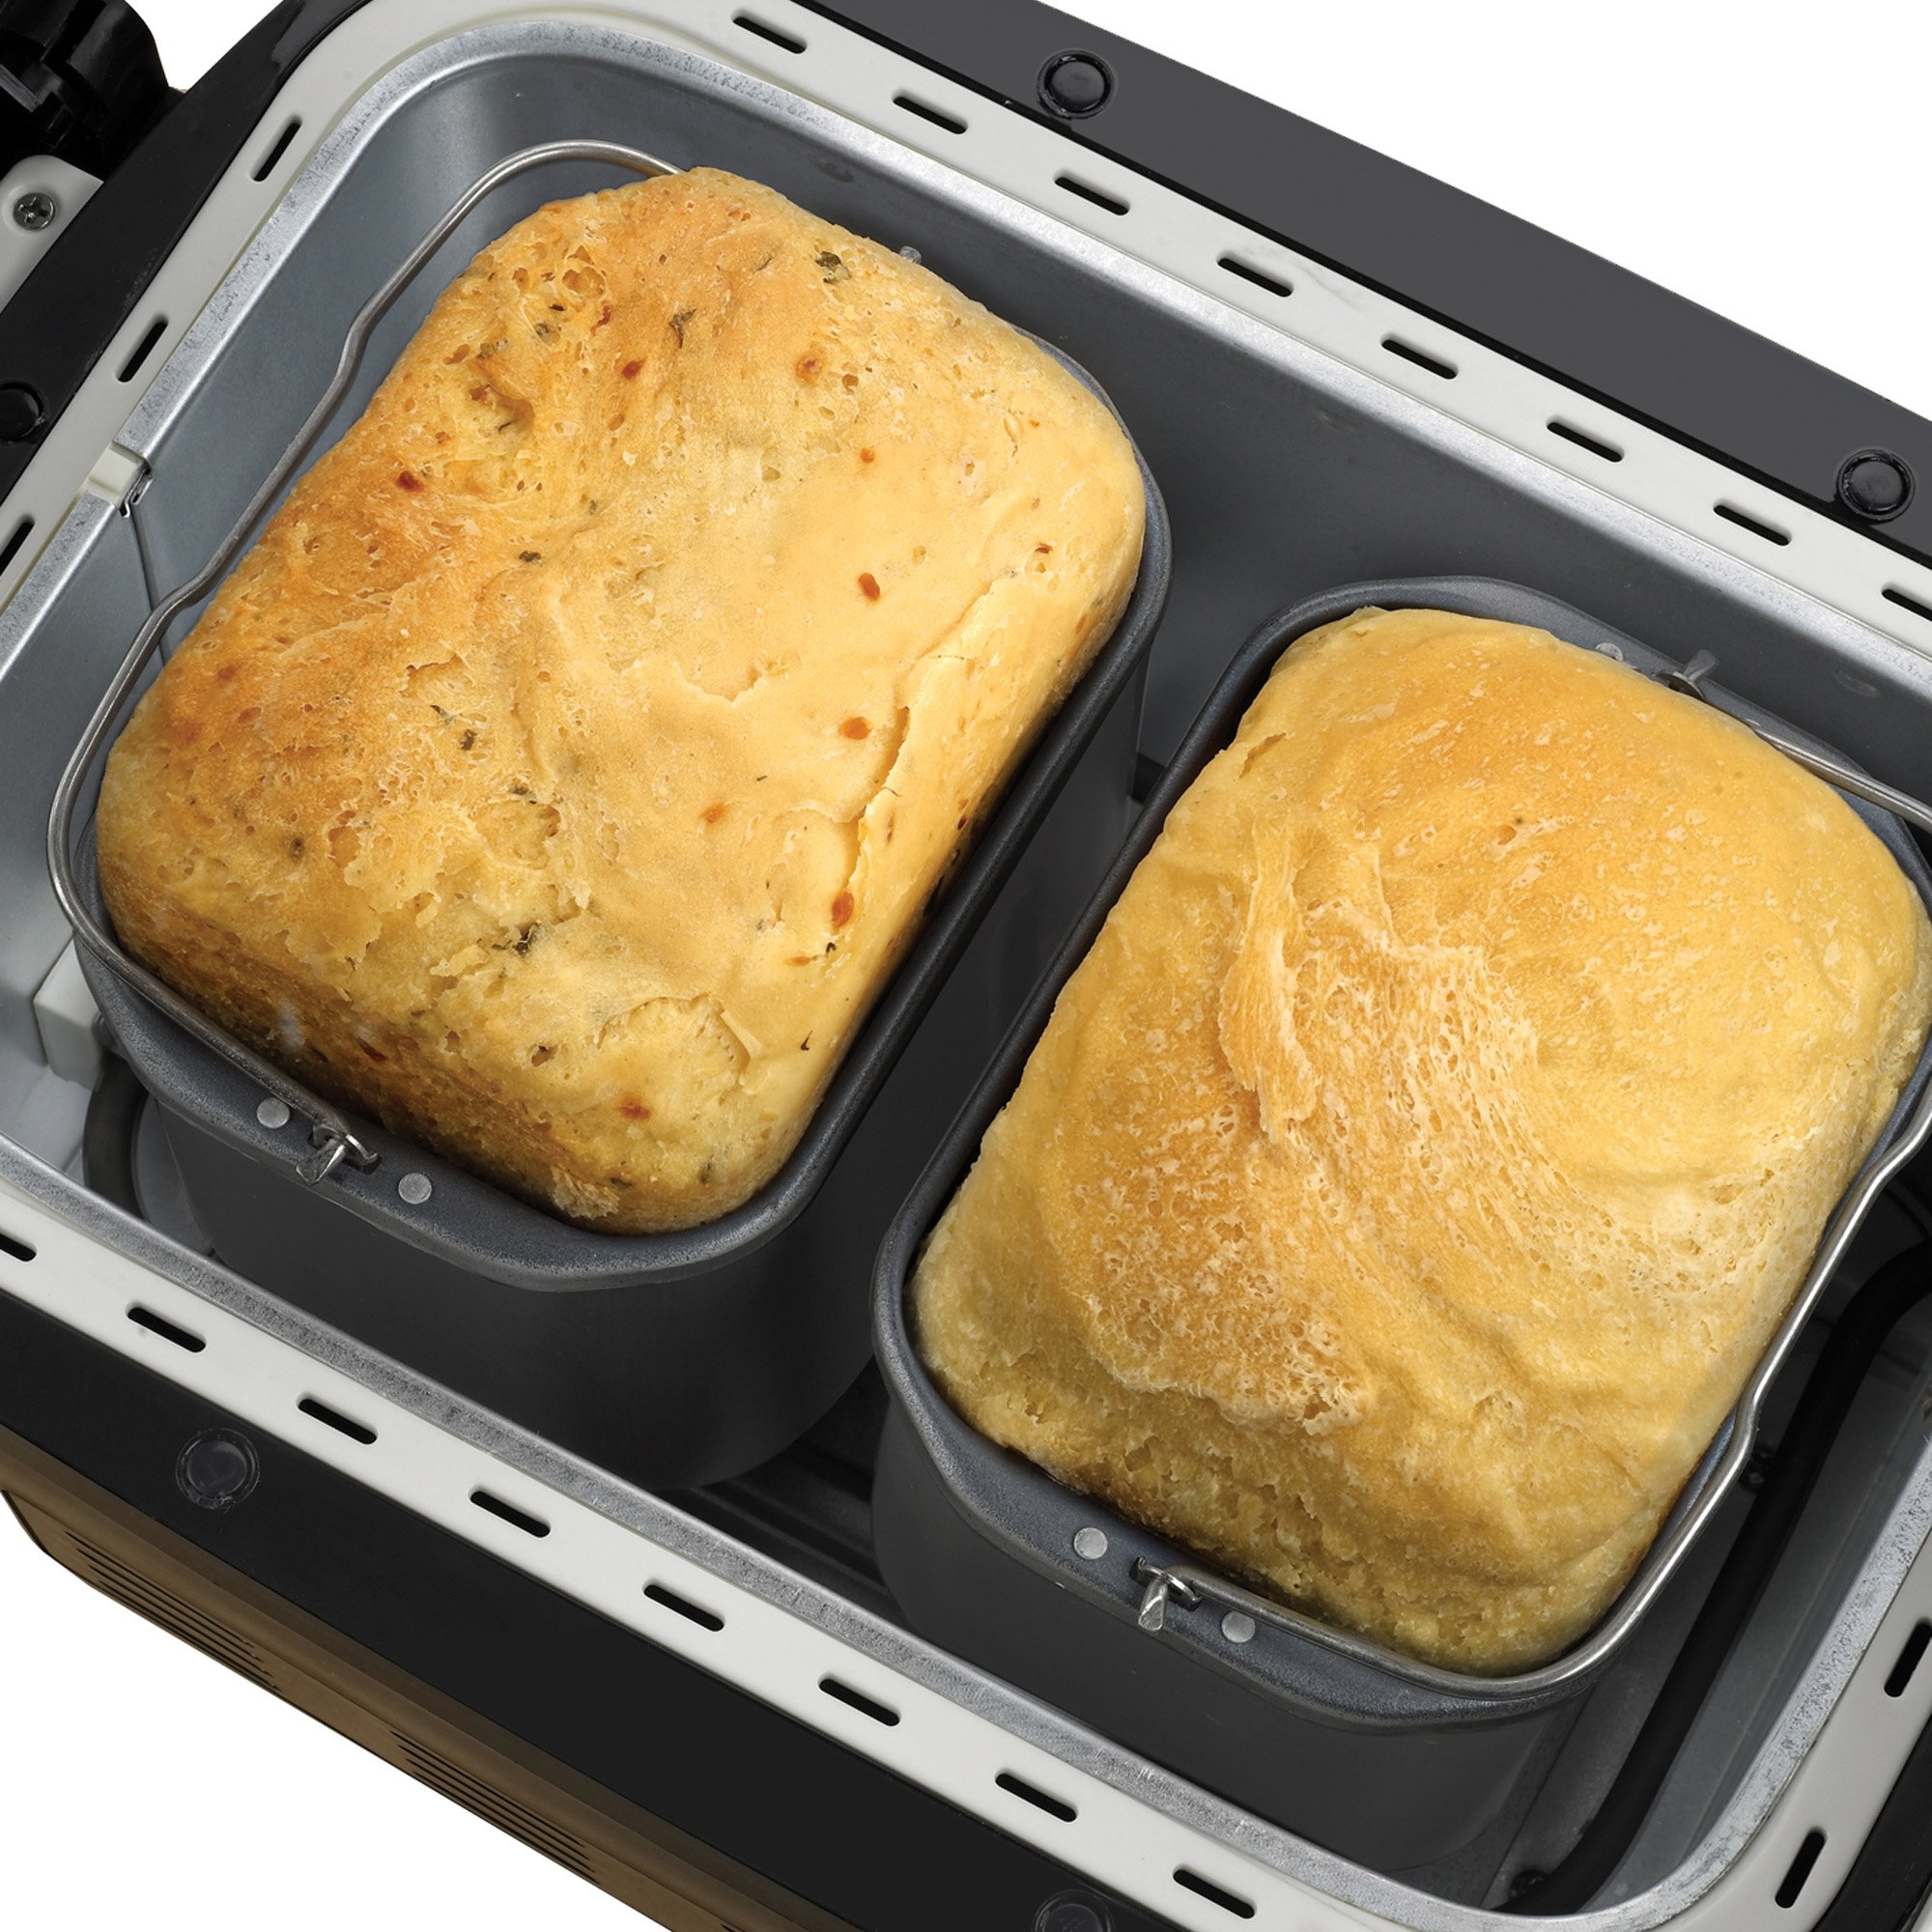 Breadman BK2000B 2-½-Pound Bakery Pro Bread Maker with Collapsible Kneading Paddles and Automatic Fruit and Nut Dispenser by Breadman (Image #3)